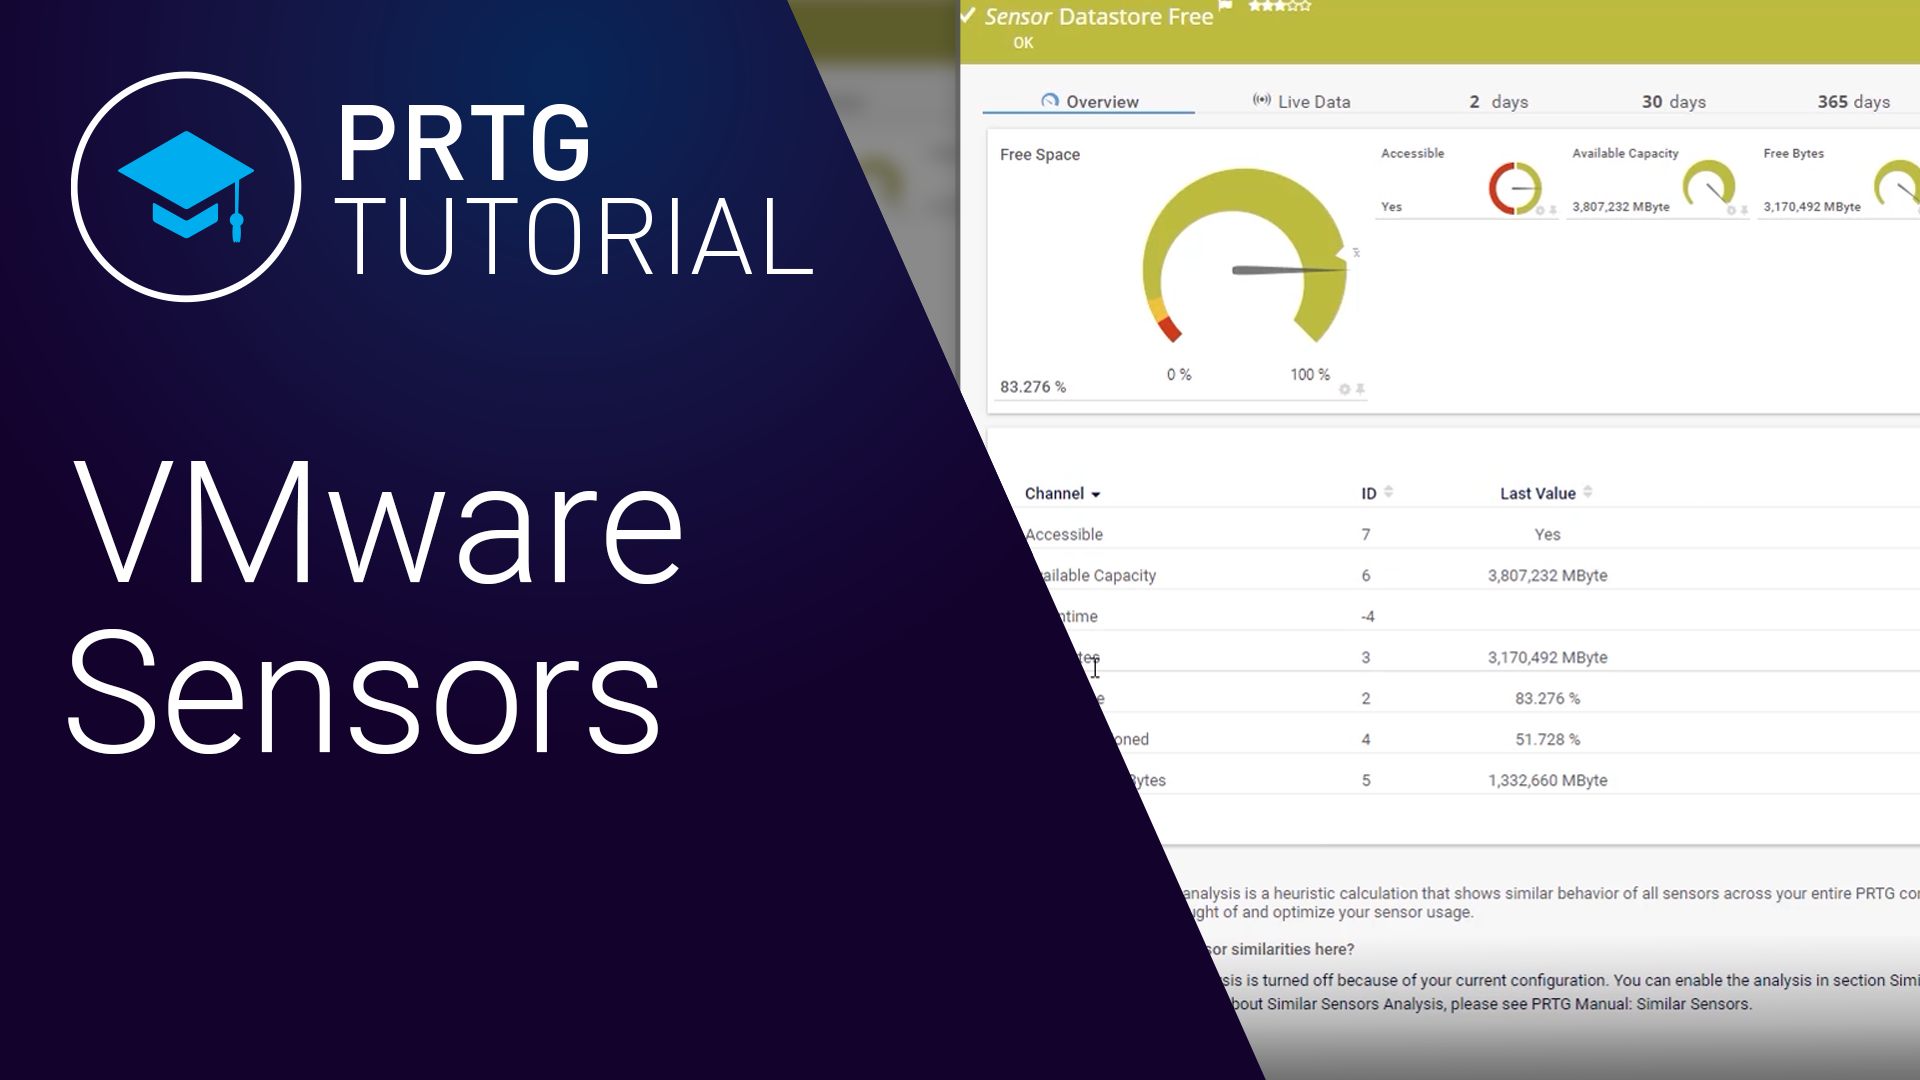 Video: VMware sensors in PRTG (Videos, Sensors)